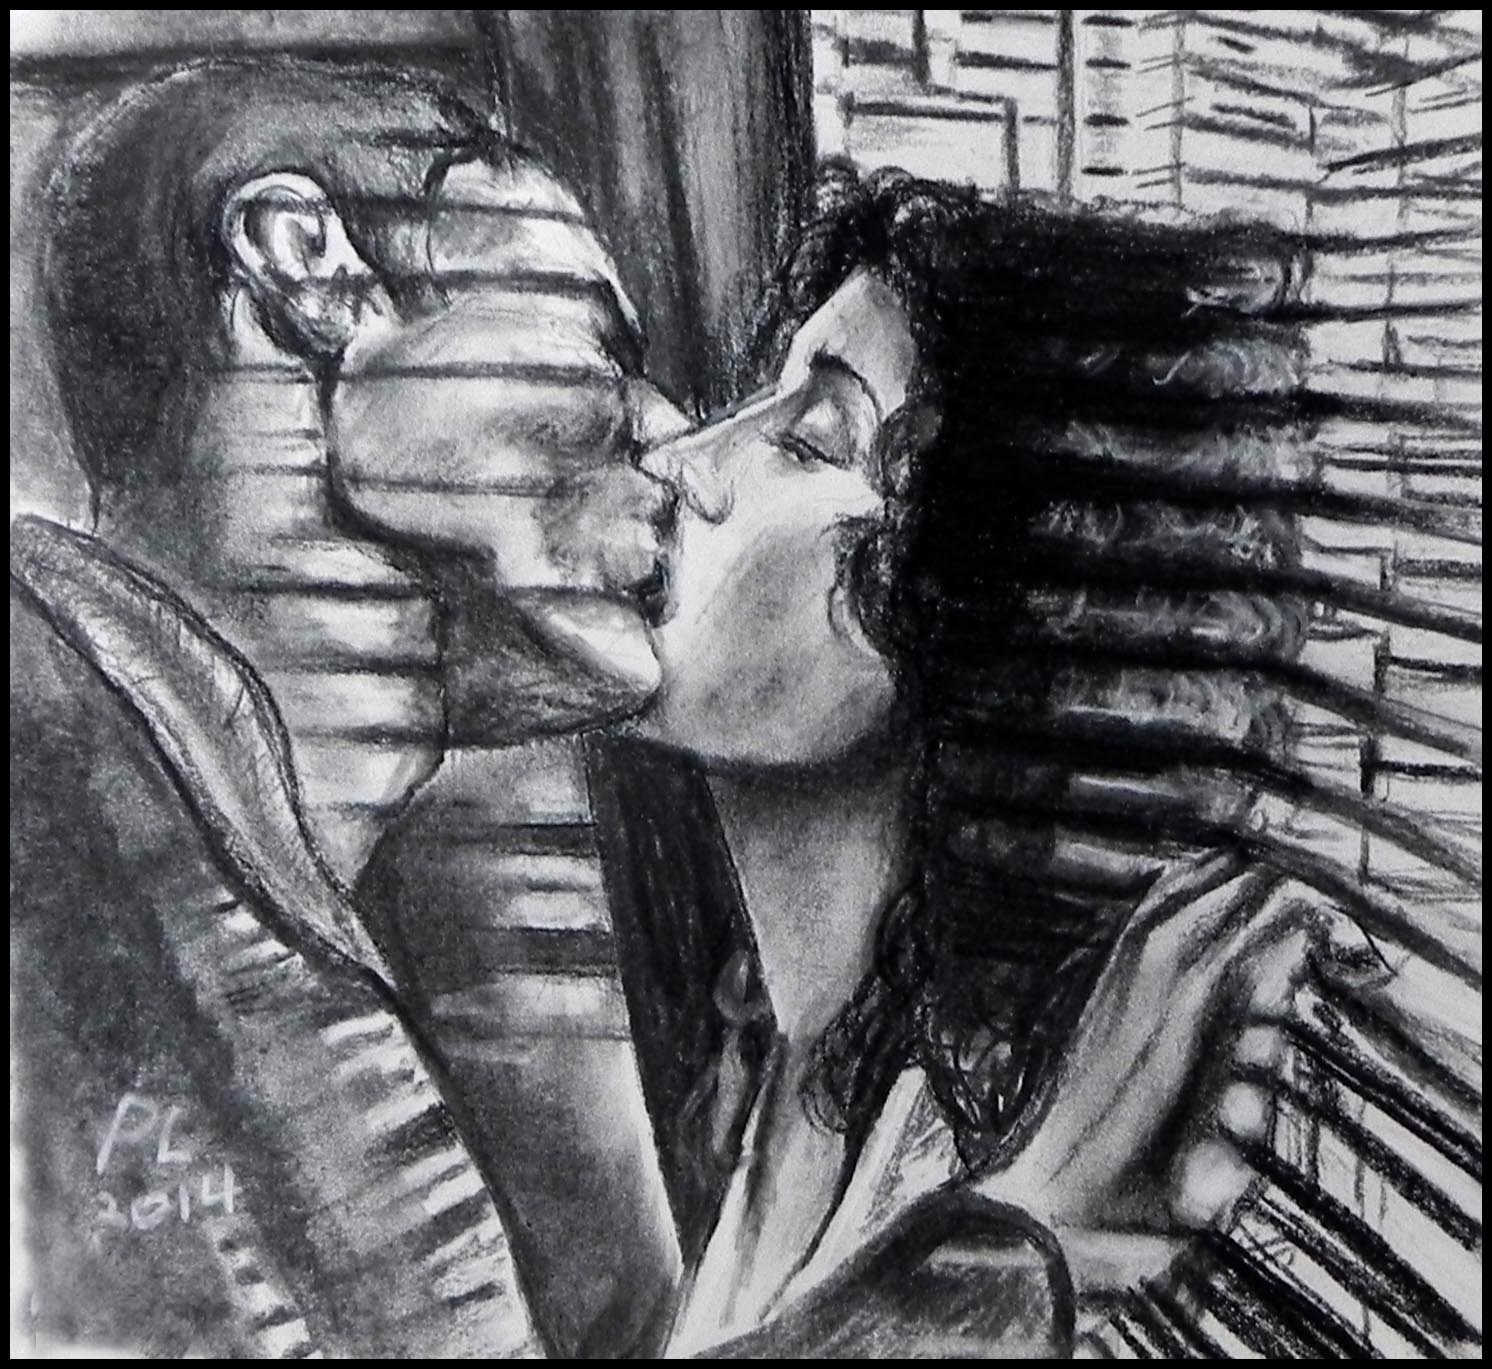 Blade Runner - The Kiss by philippeL